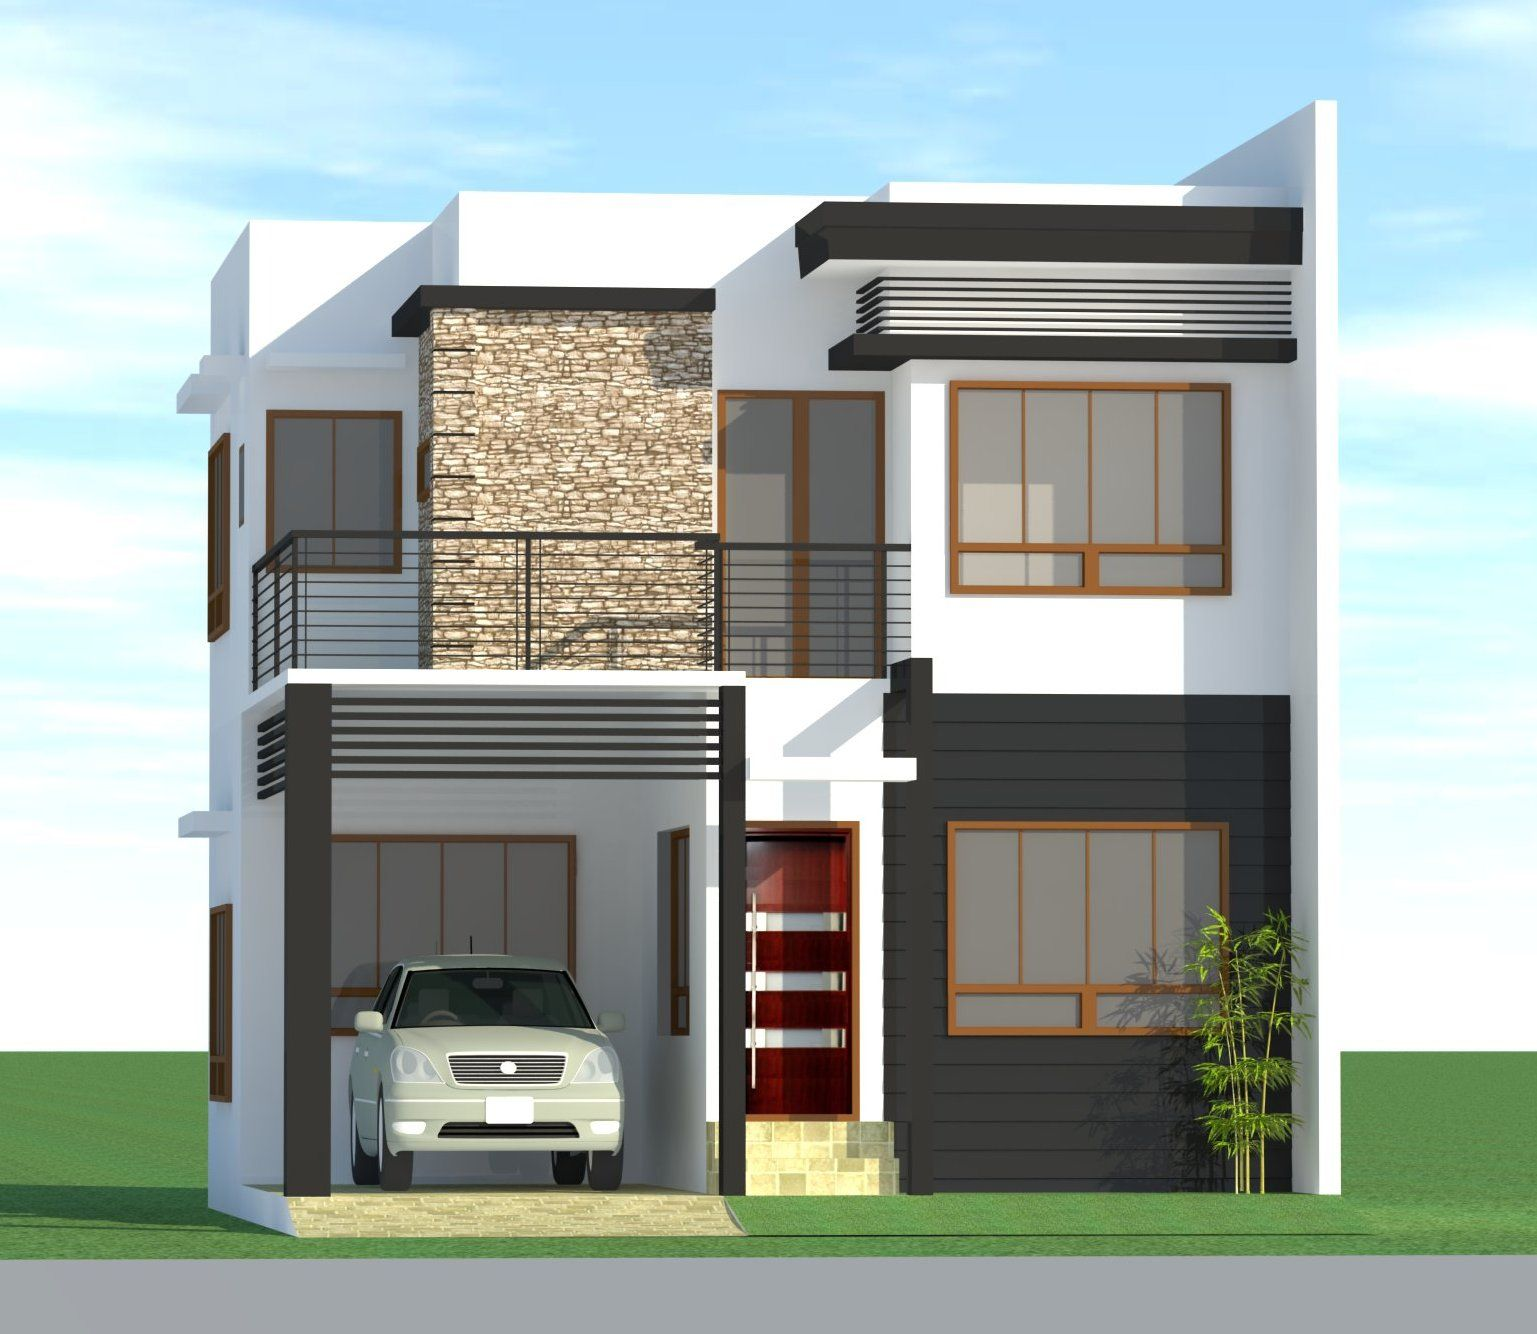 Philippines house design images 3 home design ideas for Small house design 2016